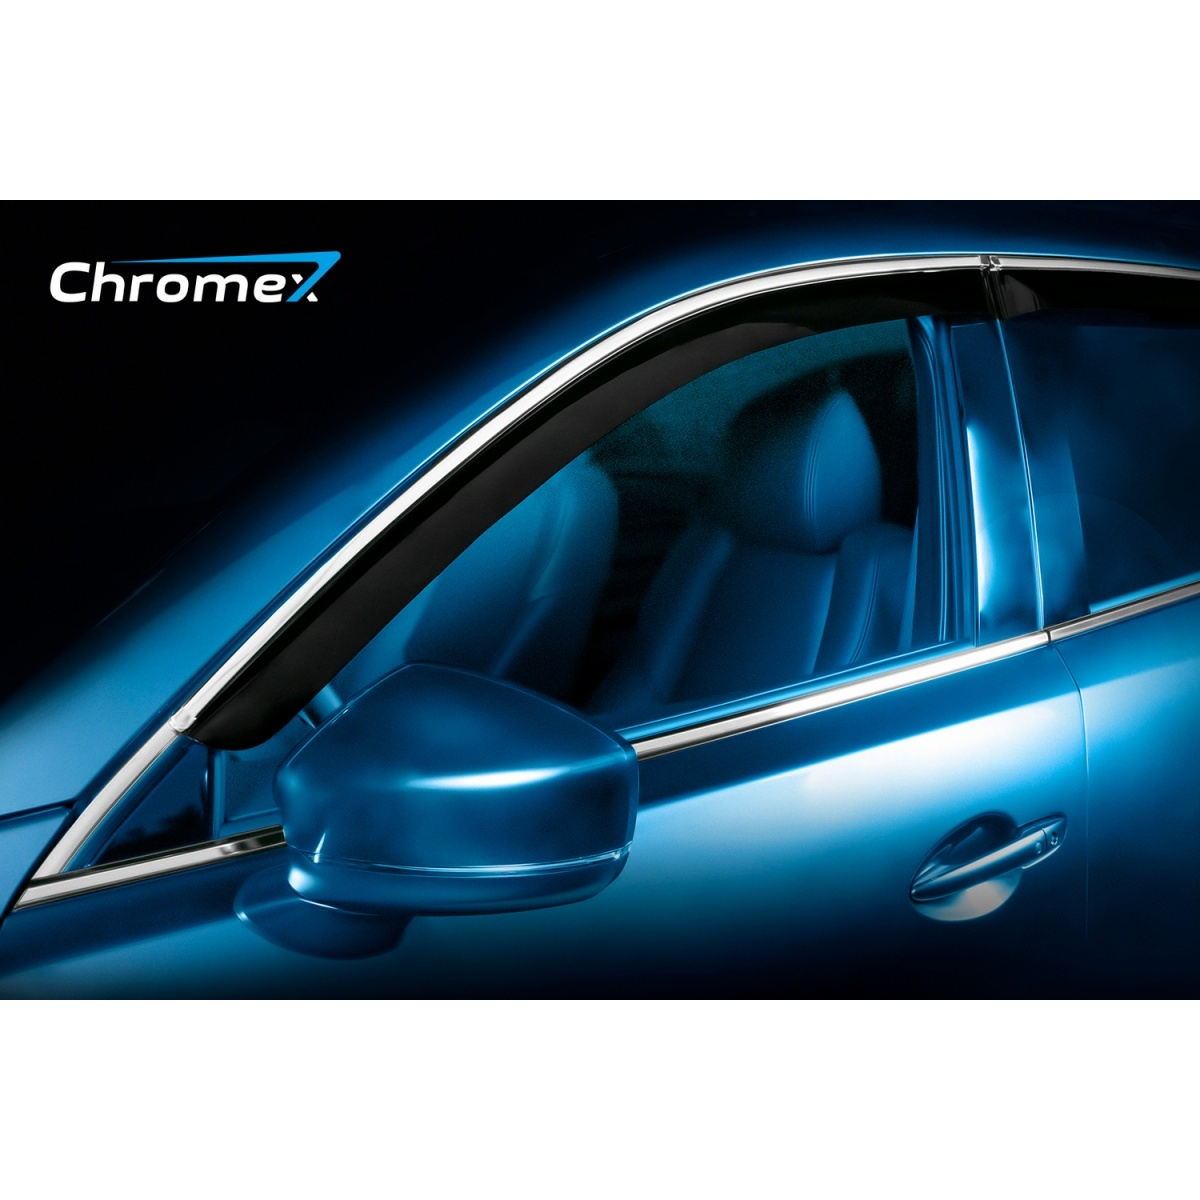 Mesh on bumper exterior for Hyundai Solaris 2011 2014  Chrome  20mm (with Awnings & Shelters     - title=